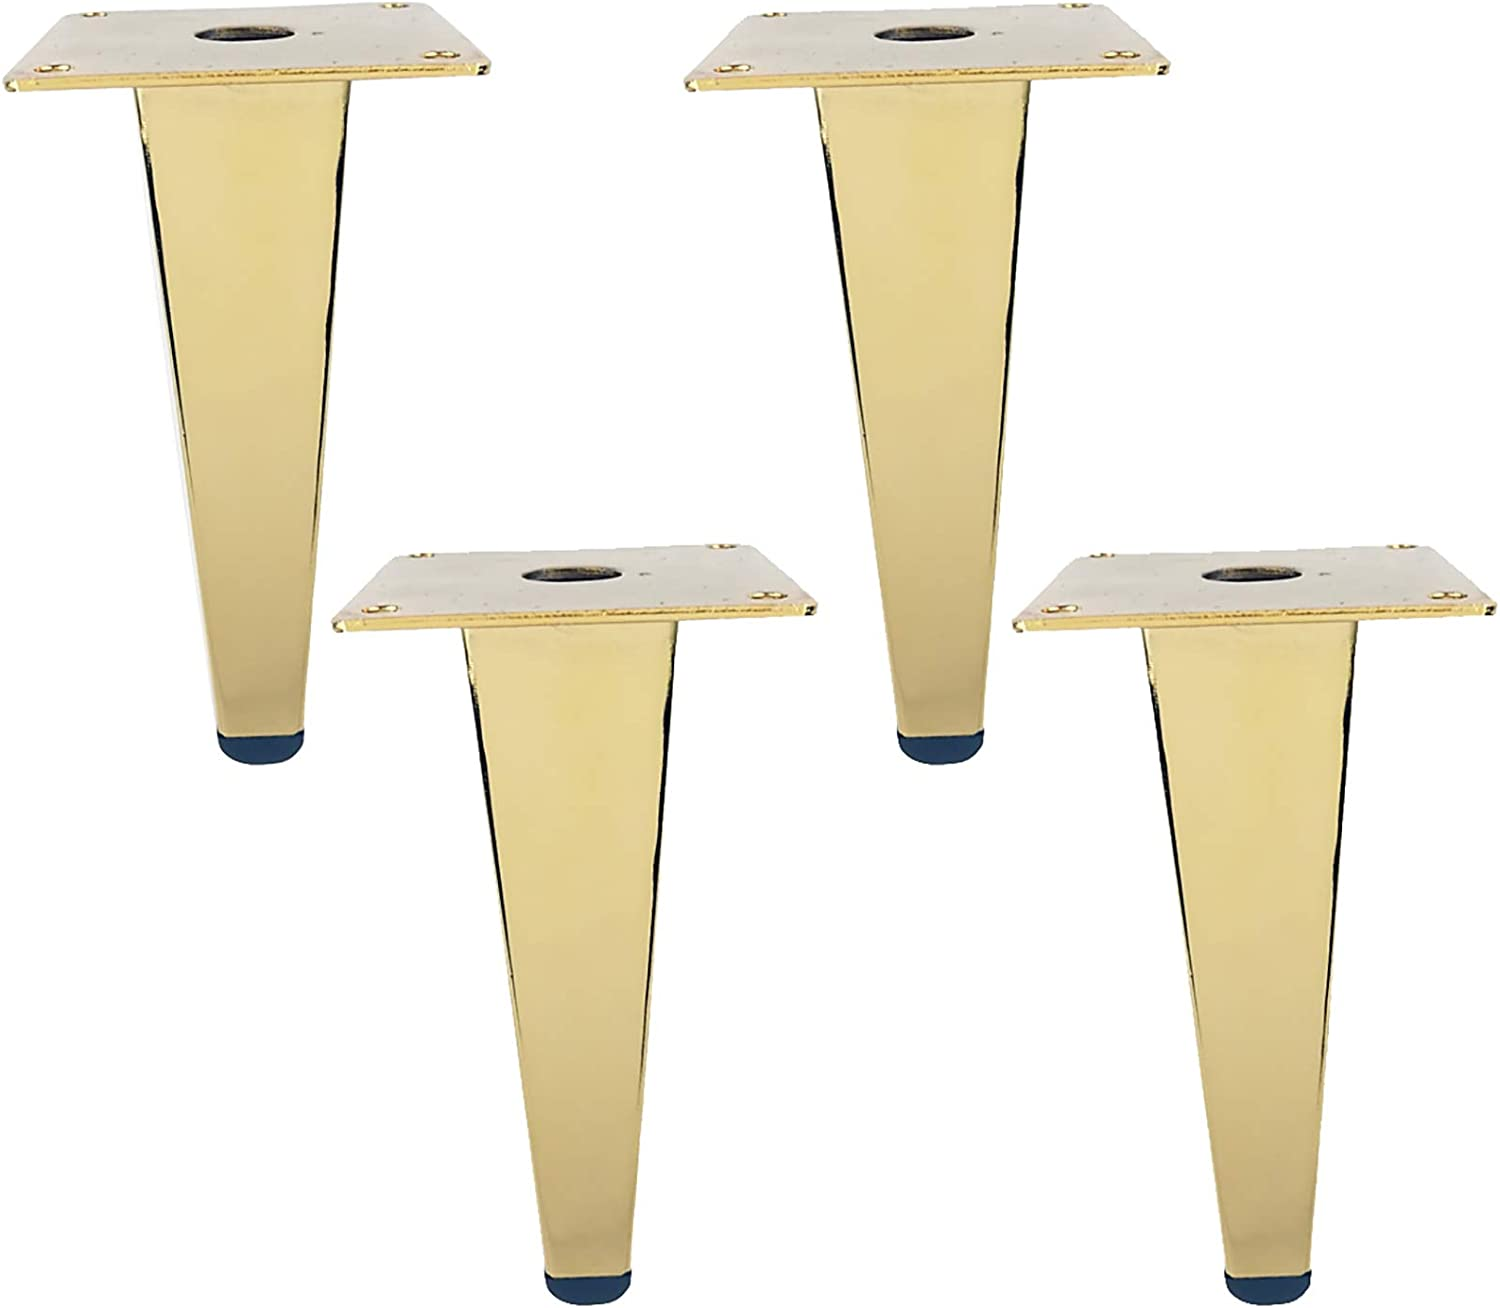 4pcs Furniture Super intense SALE Legs Metal Feet for Direct sale of manufacturer Replacement